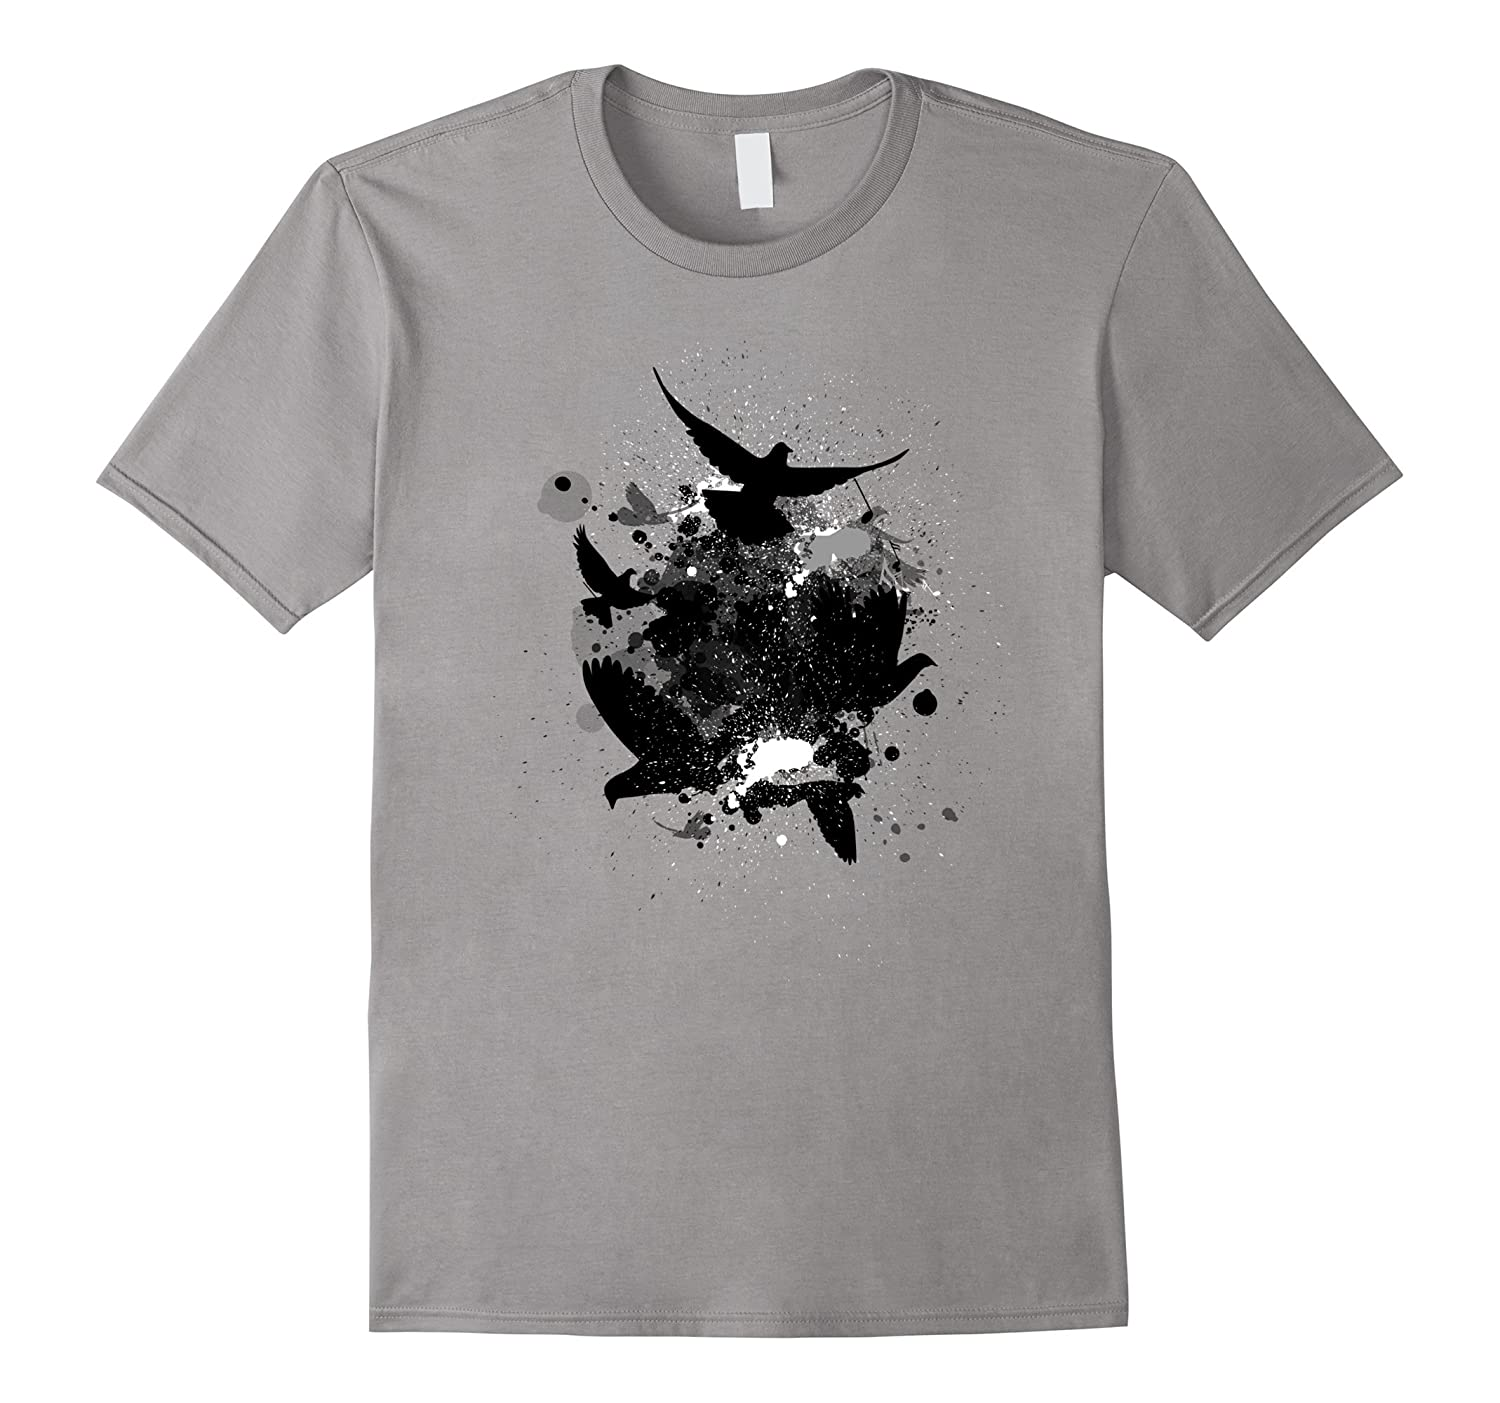 Abstract Black Birds Shirt Gift For Bird And Art Lovers-TH